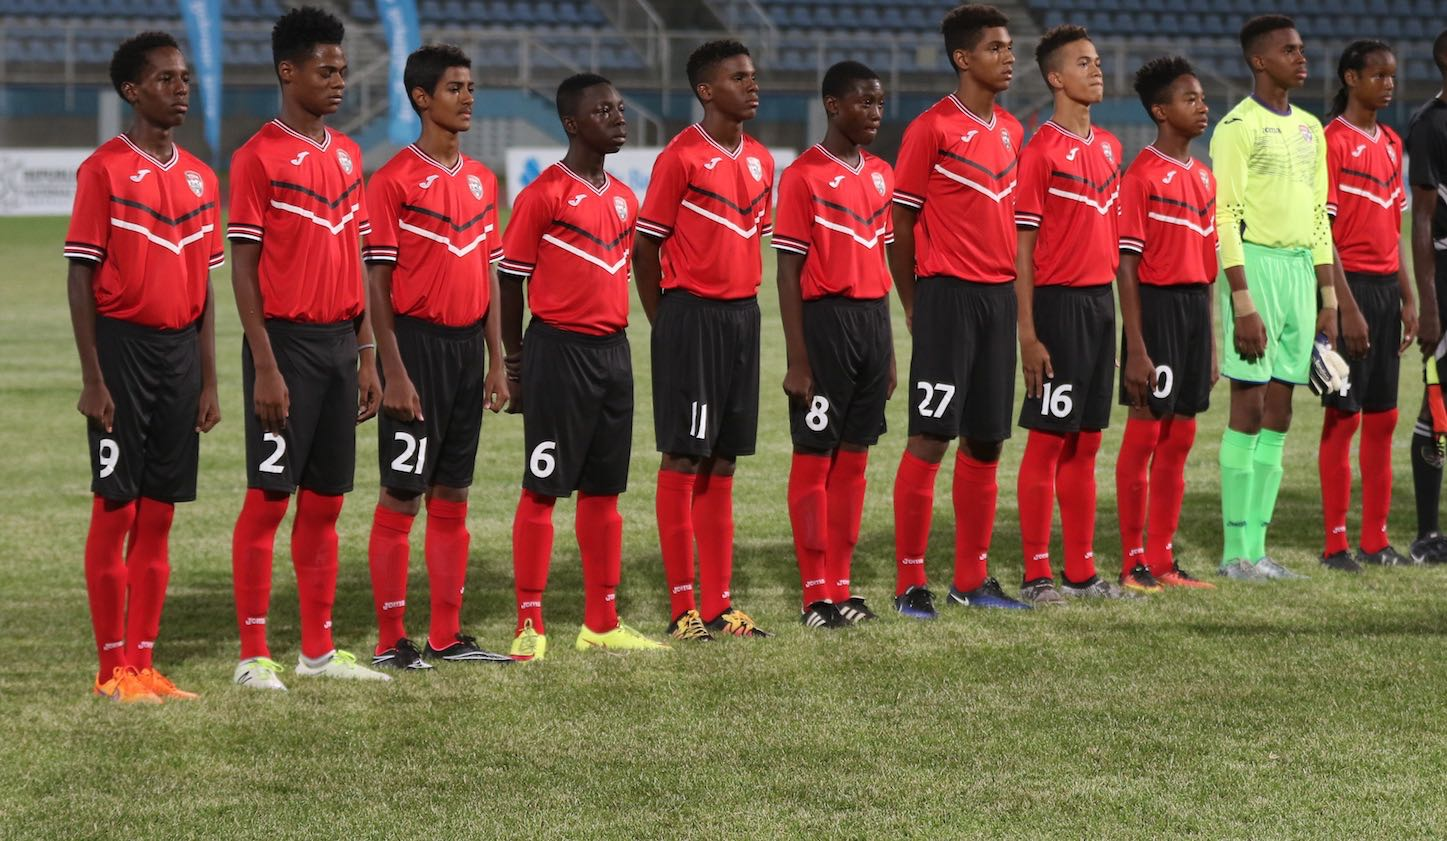 Latapy looks to widen Under 15 pool.